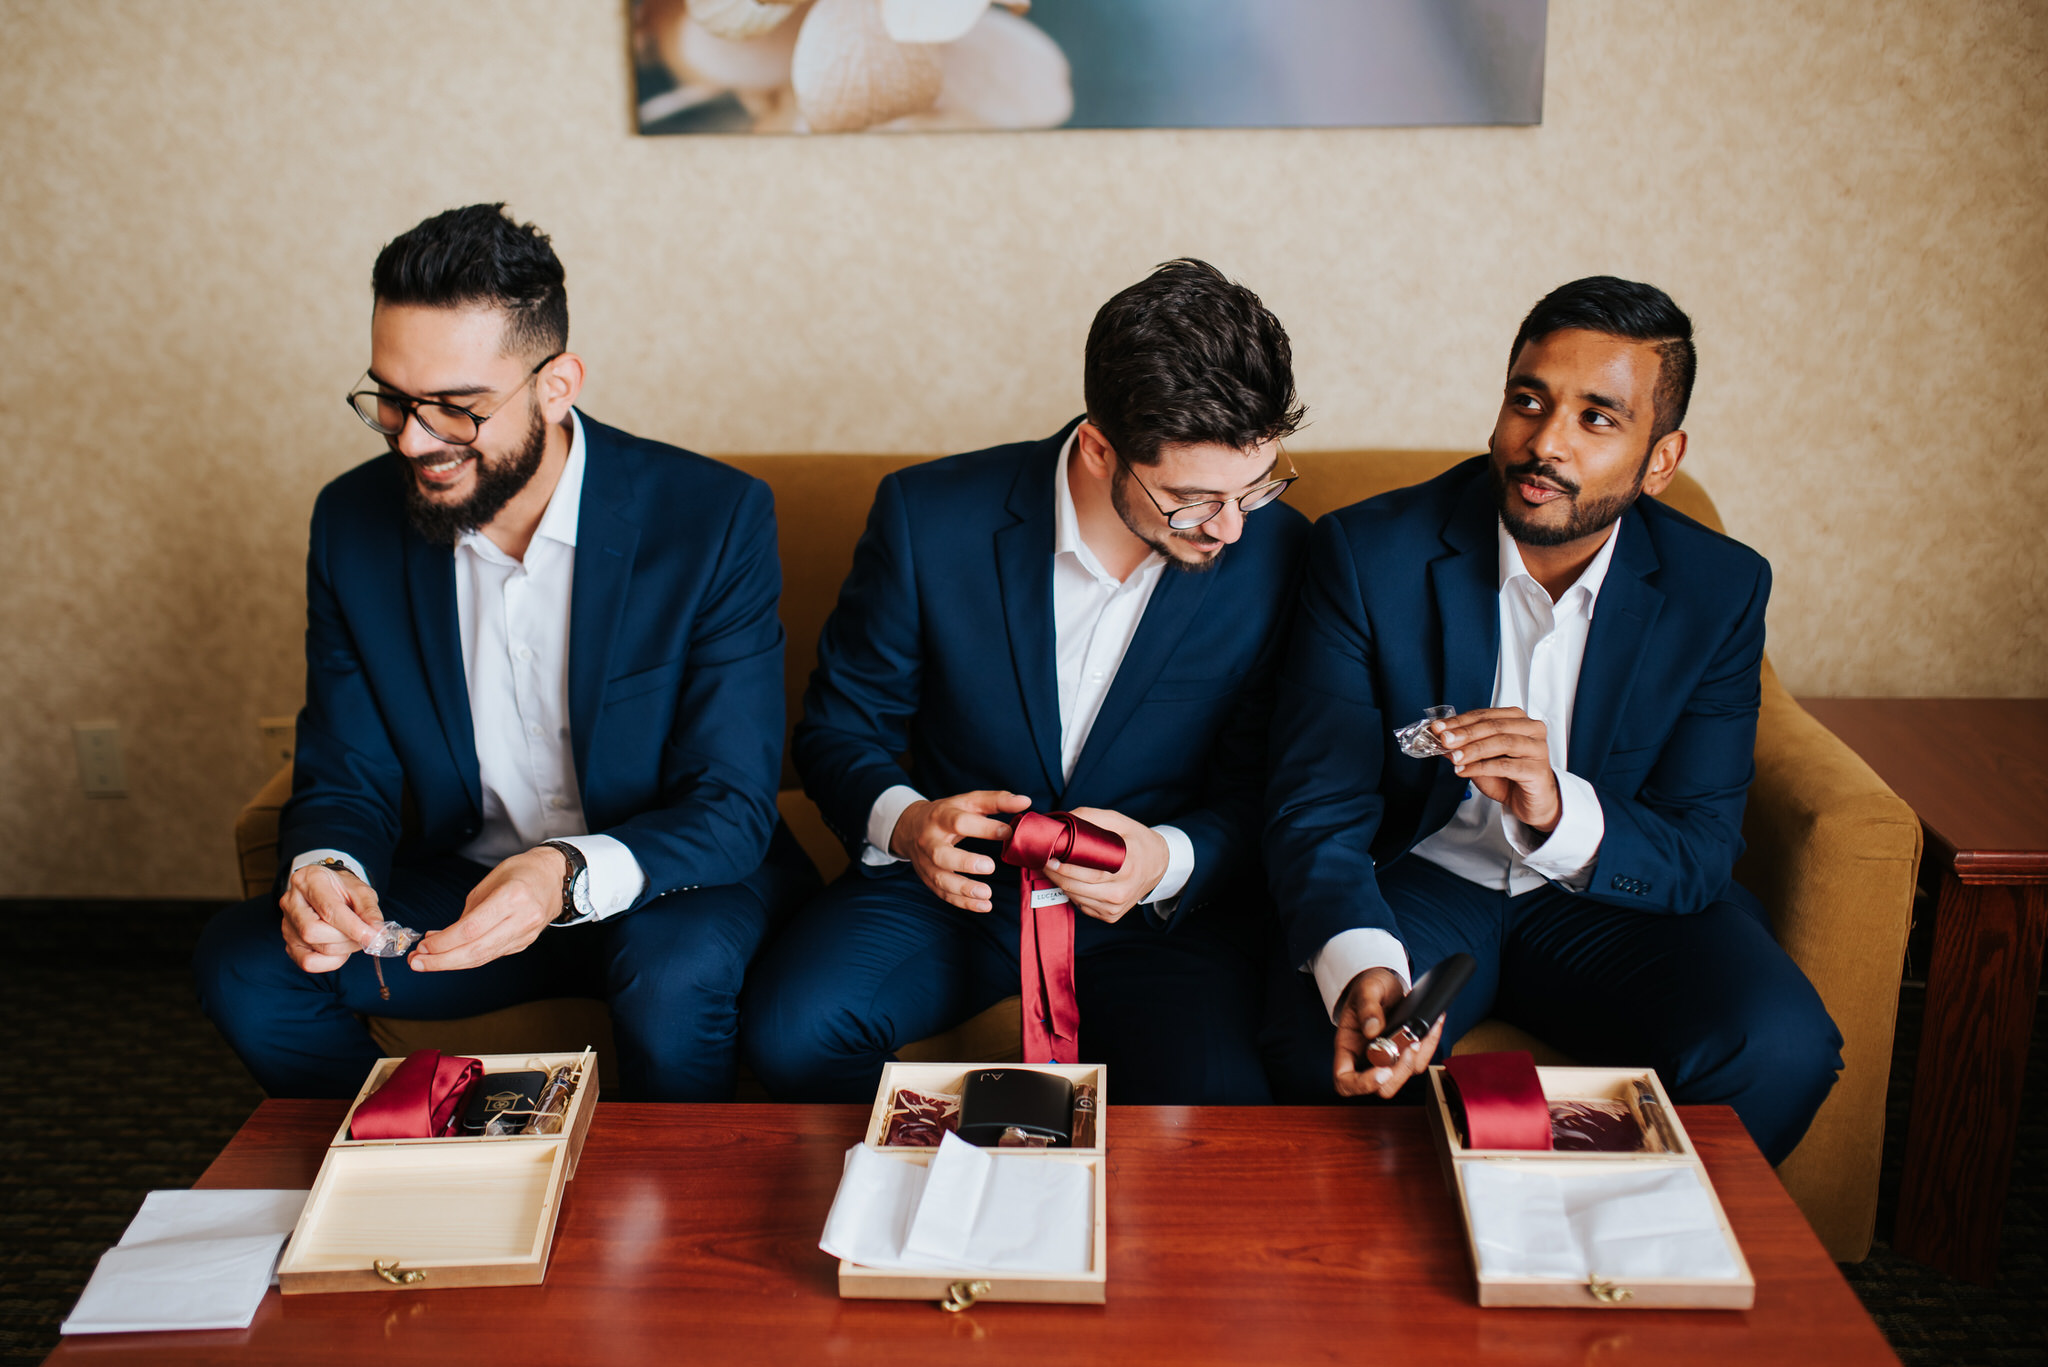 Waterstone Estate & Farms Wedding - groomsmen gifts